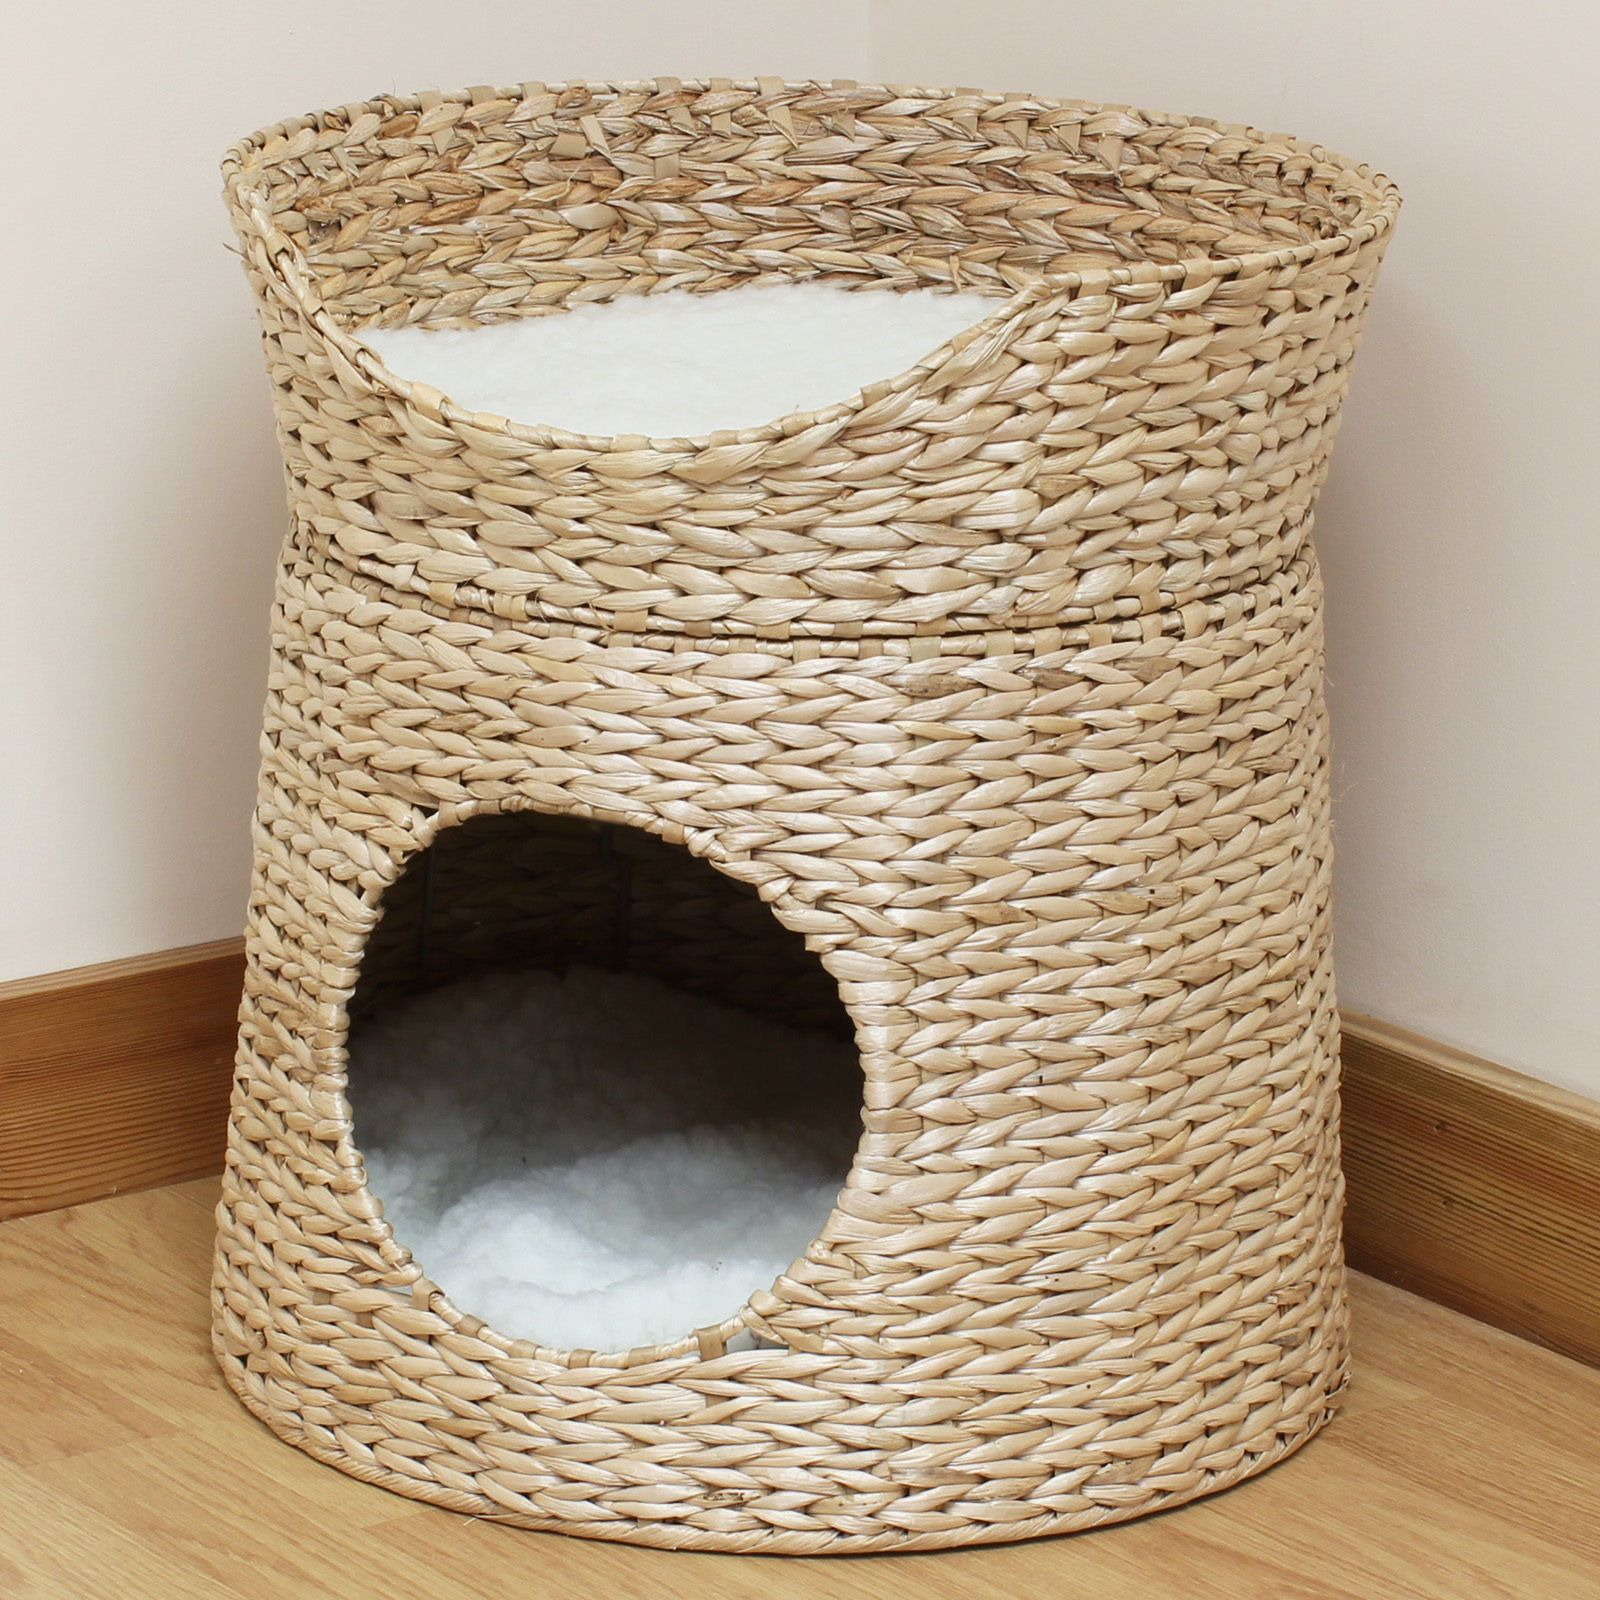 Seagrass beds furniture - Details About Double Cat Kitten Puppy Bed Natural Woven Seagrass Twin Basket Pod Igloo Cave